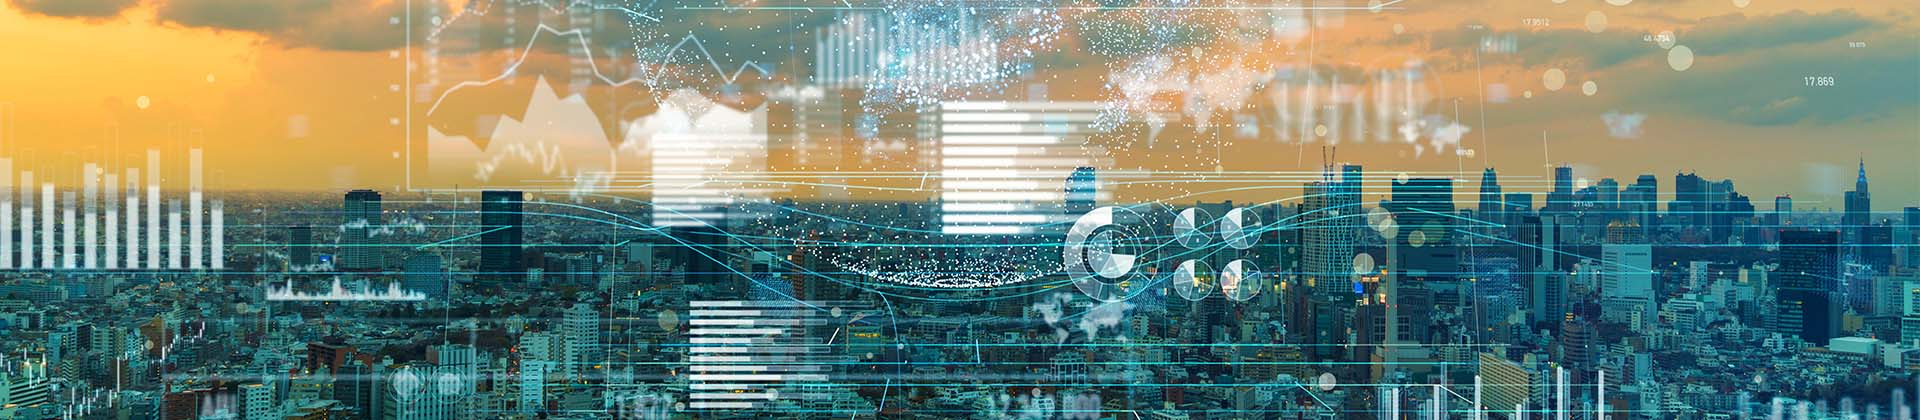 smart city, water data, data security in the cloud